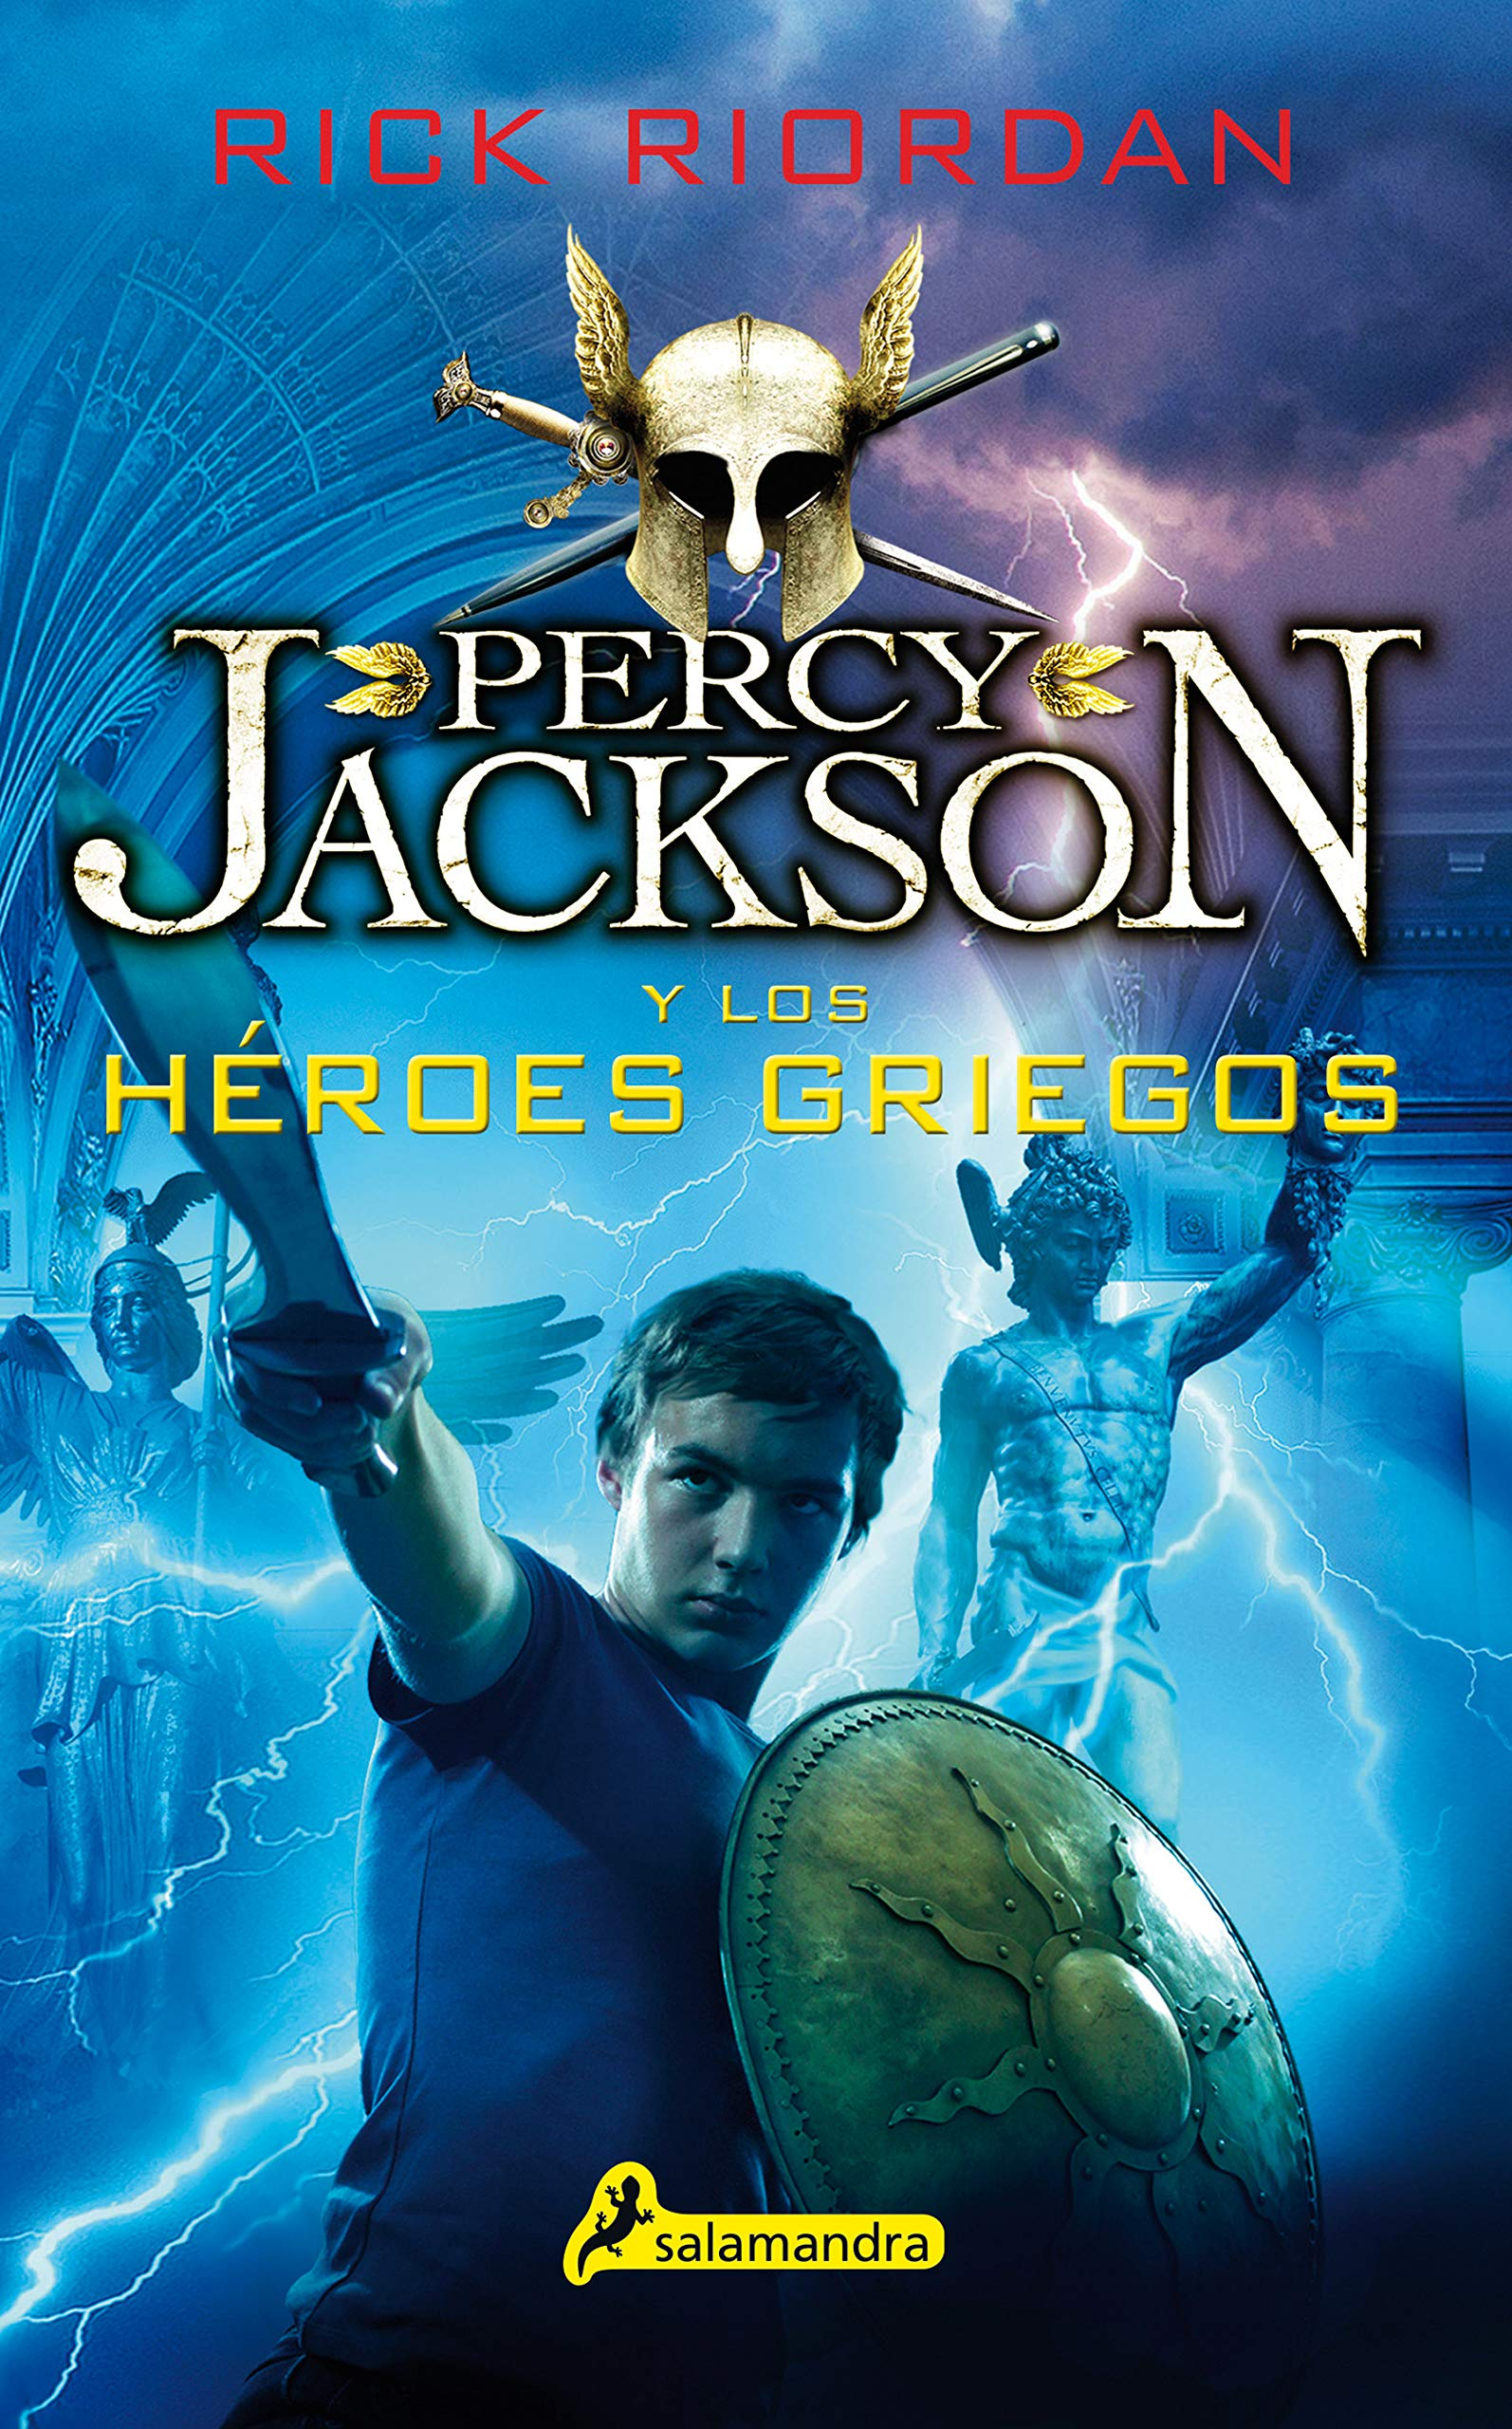 Percy Jackson Y Los Héroes Griegos Percy Jackson S Greek Heroes Percy Jackson Y Los Dioses Del Olimpo Percy Jackson And The Olympians Spanish Edition Riordan Rick 9788498388282 Books